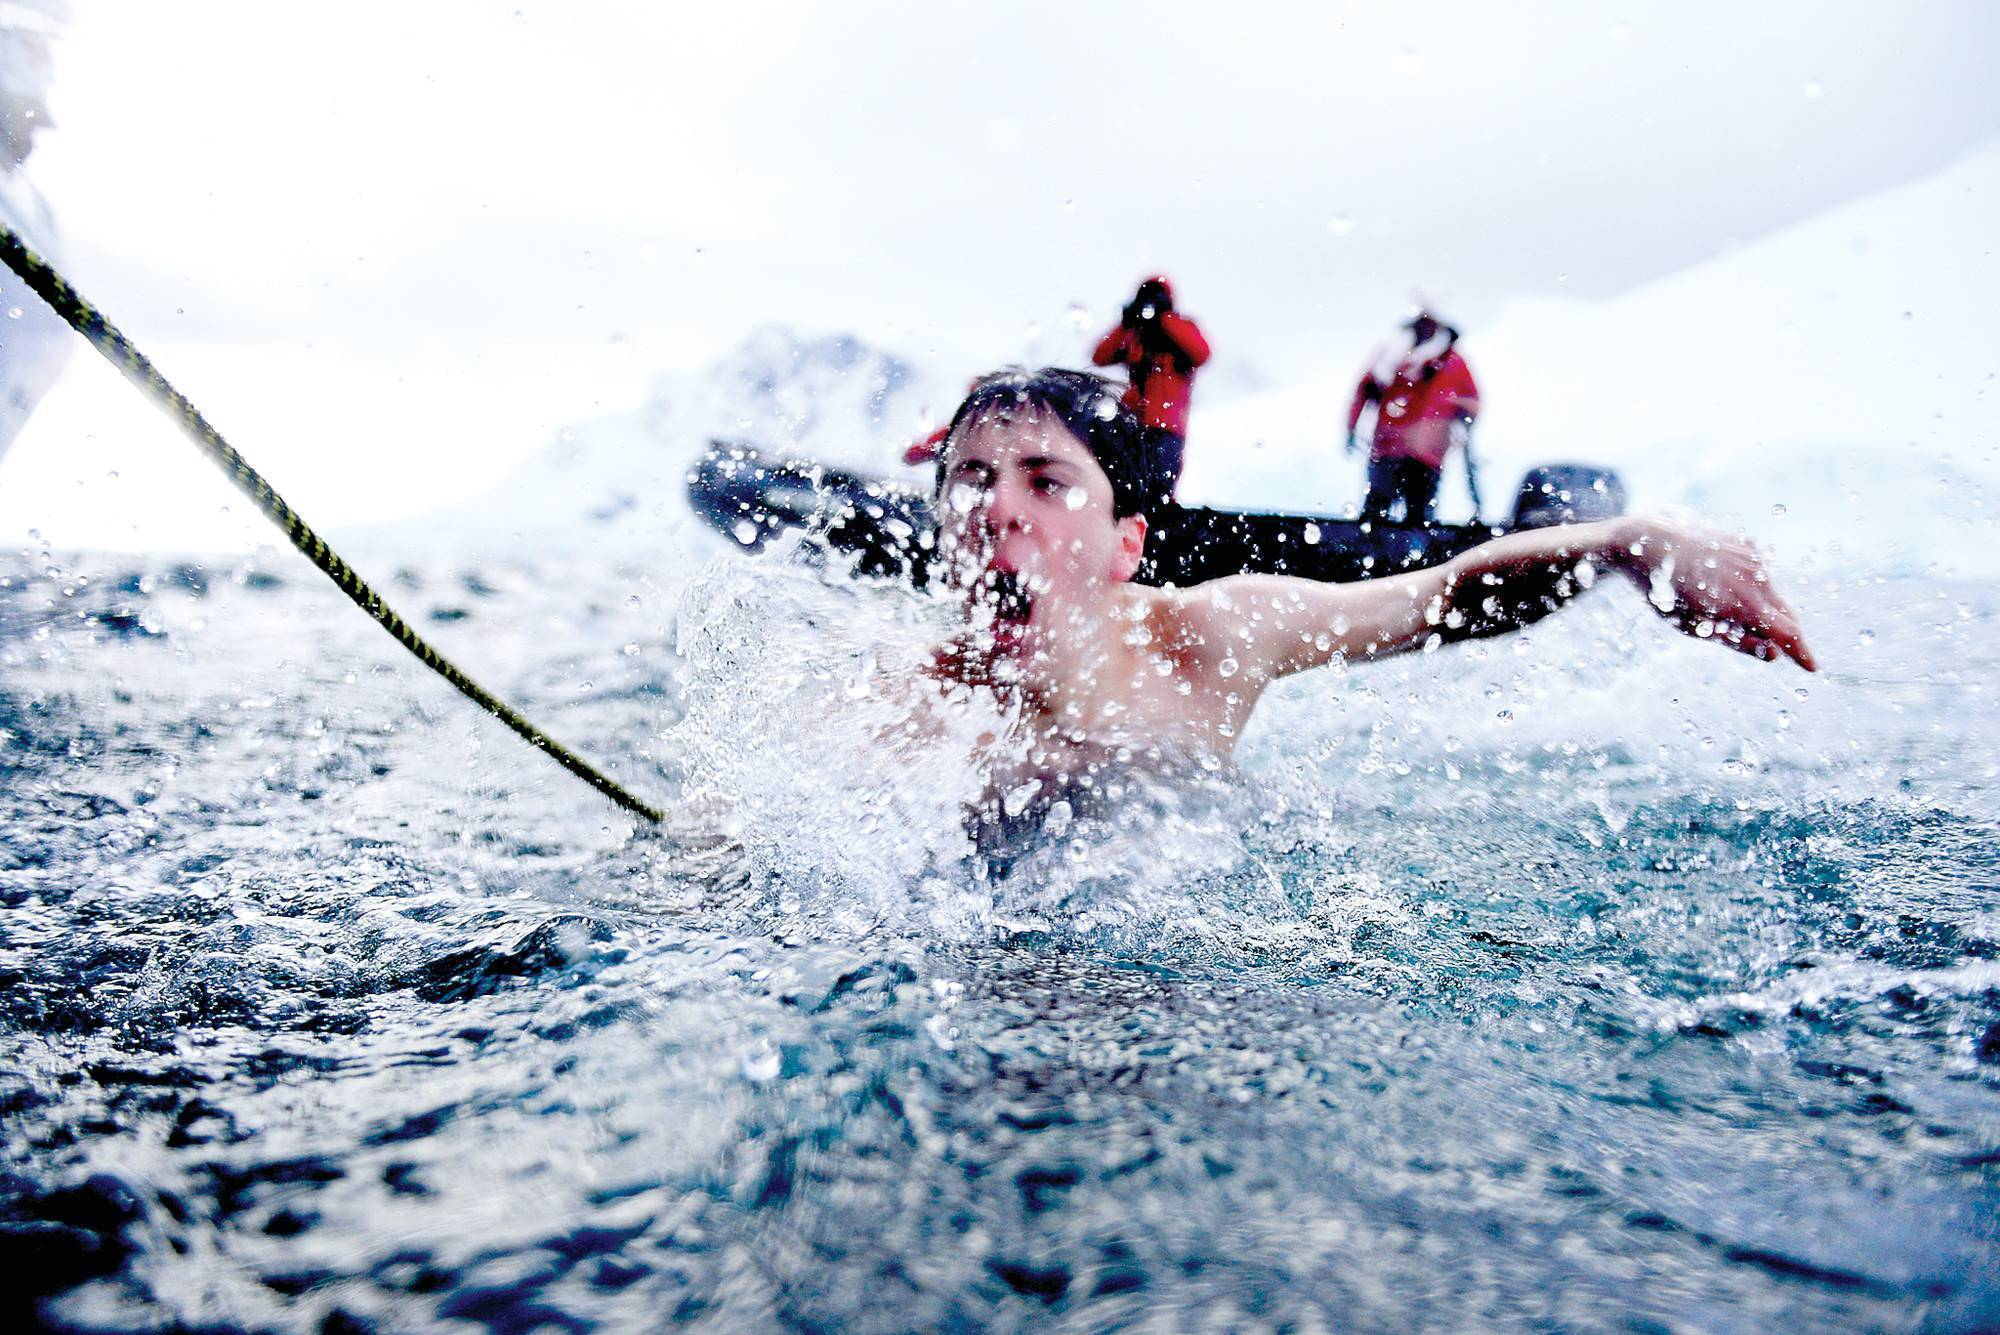 DAVID FISHMAN goes for a swim in the 28-degree waters of Antarctica's Orne Harbor on March 16 as part of the 2041 Antarctic Youth Ambassador Program.